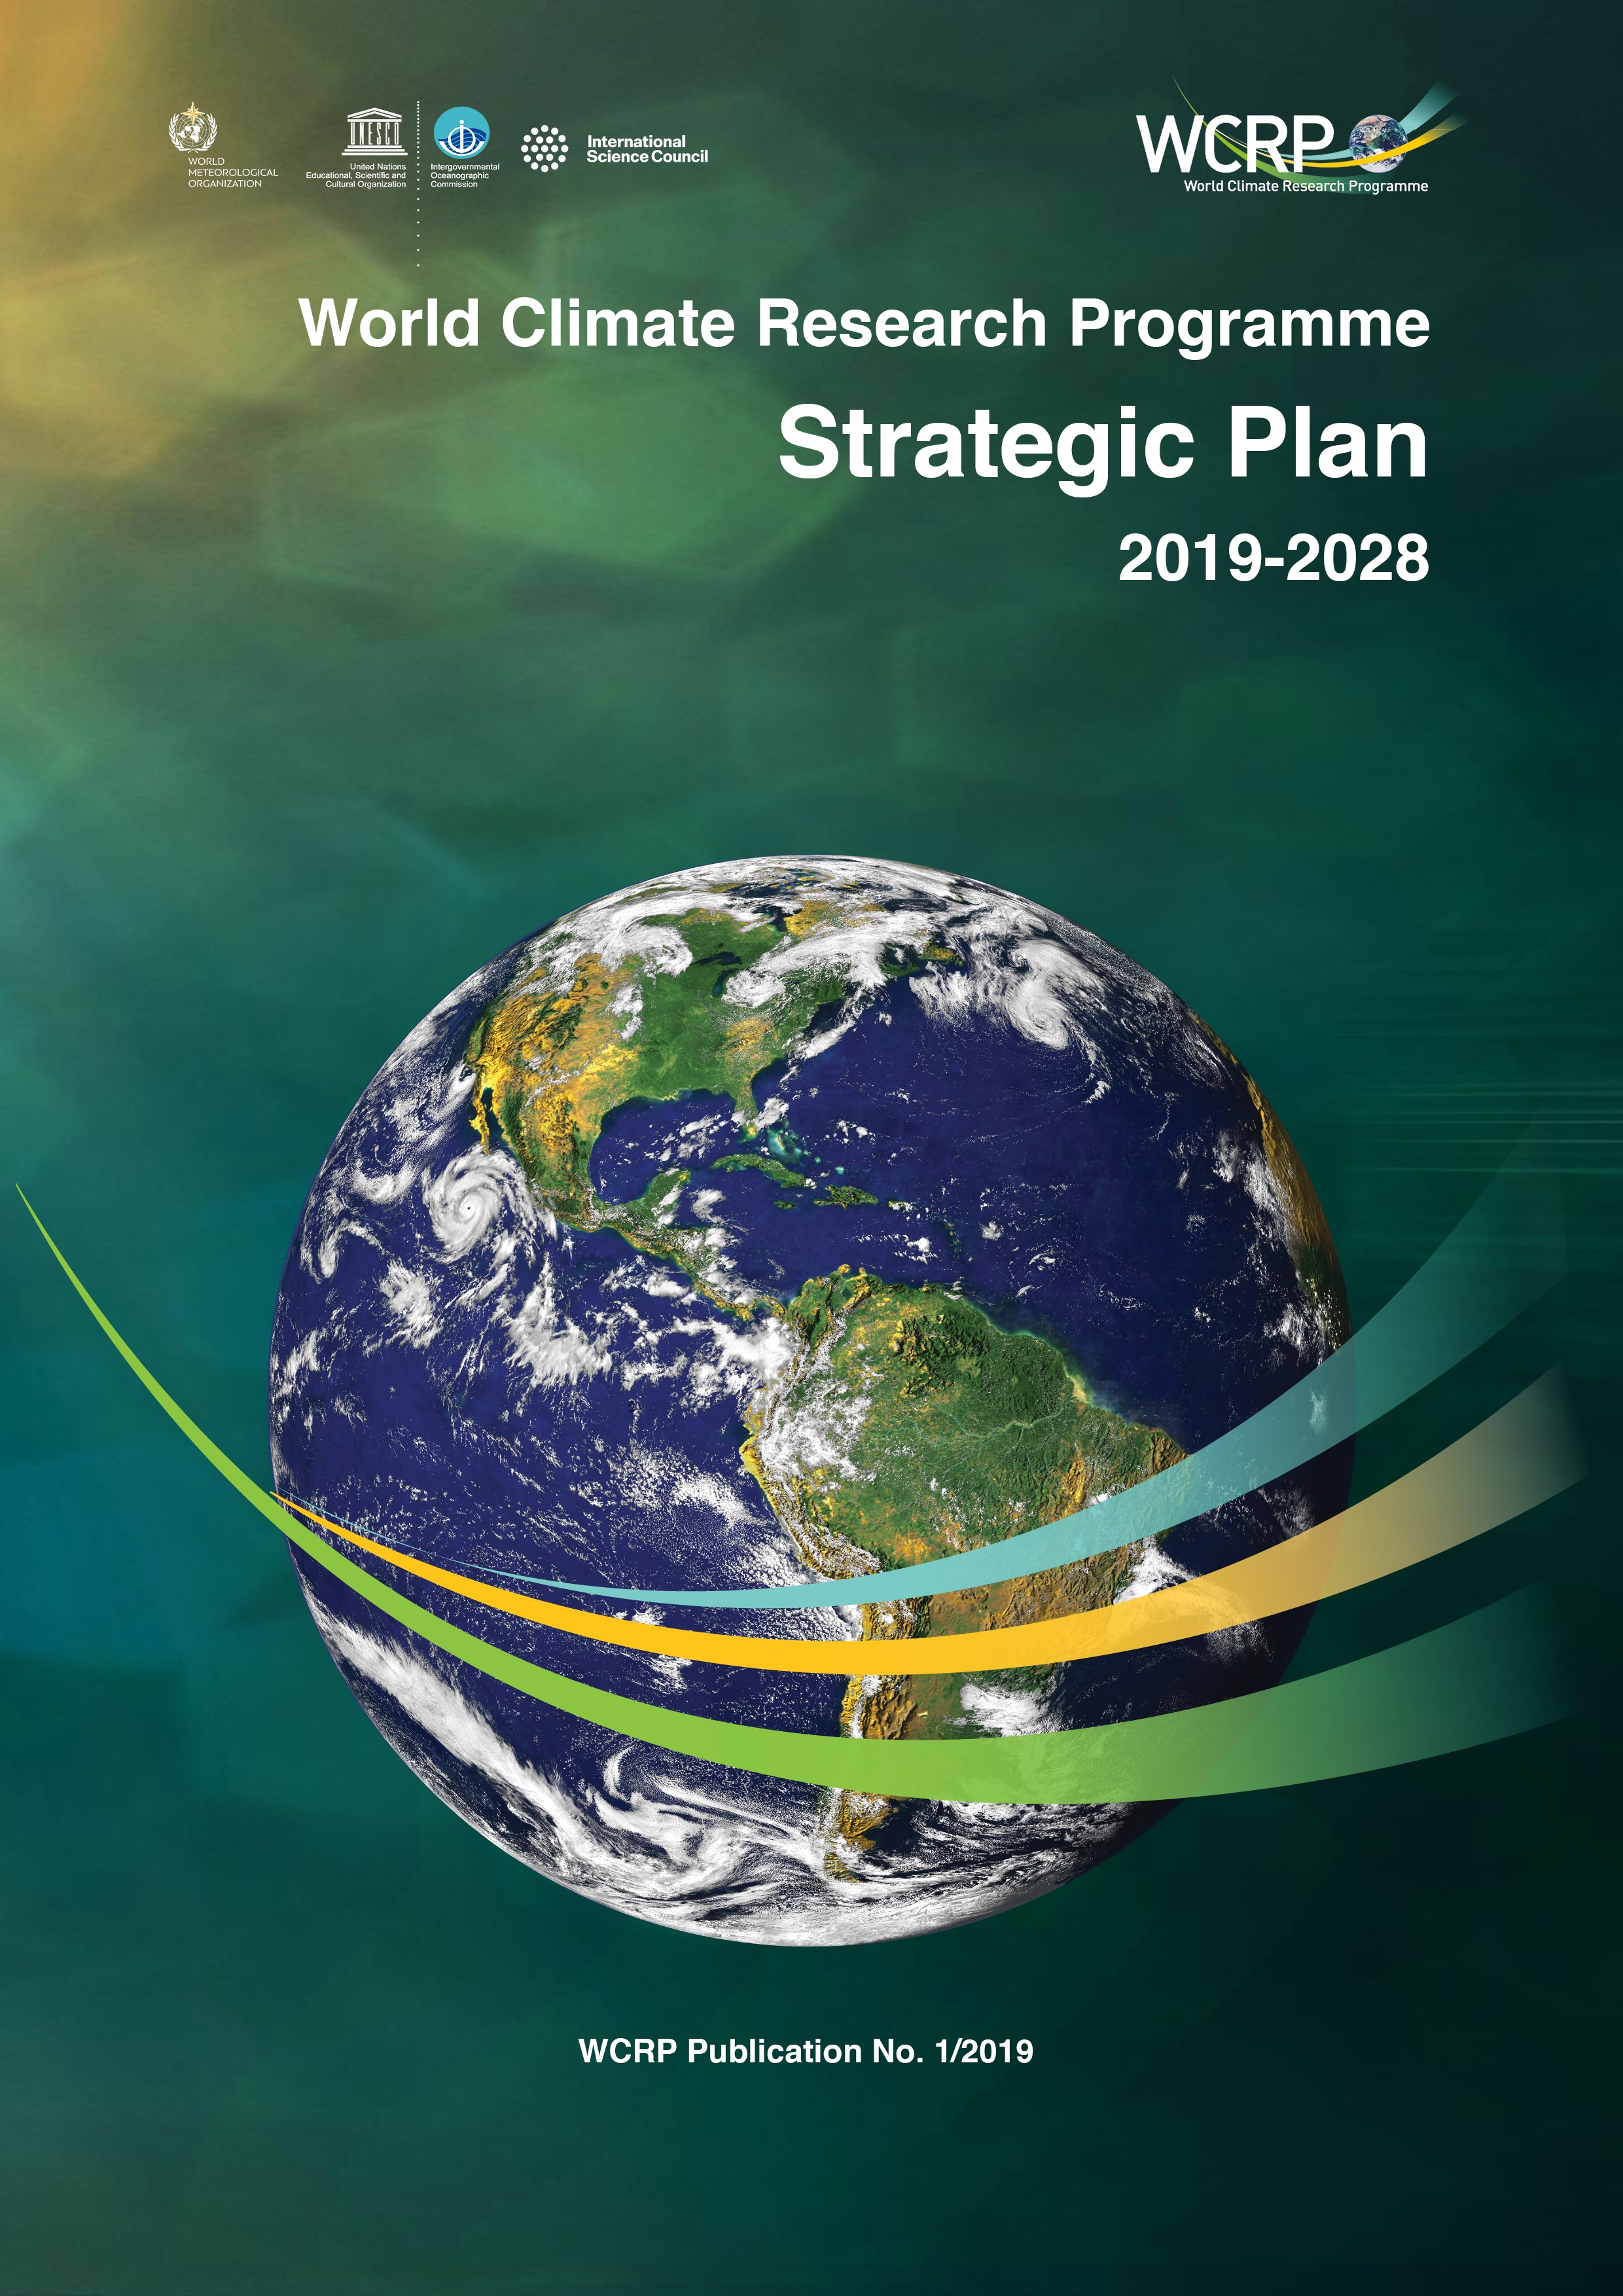 WCRP Strategic Plan Cover